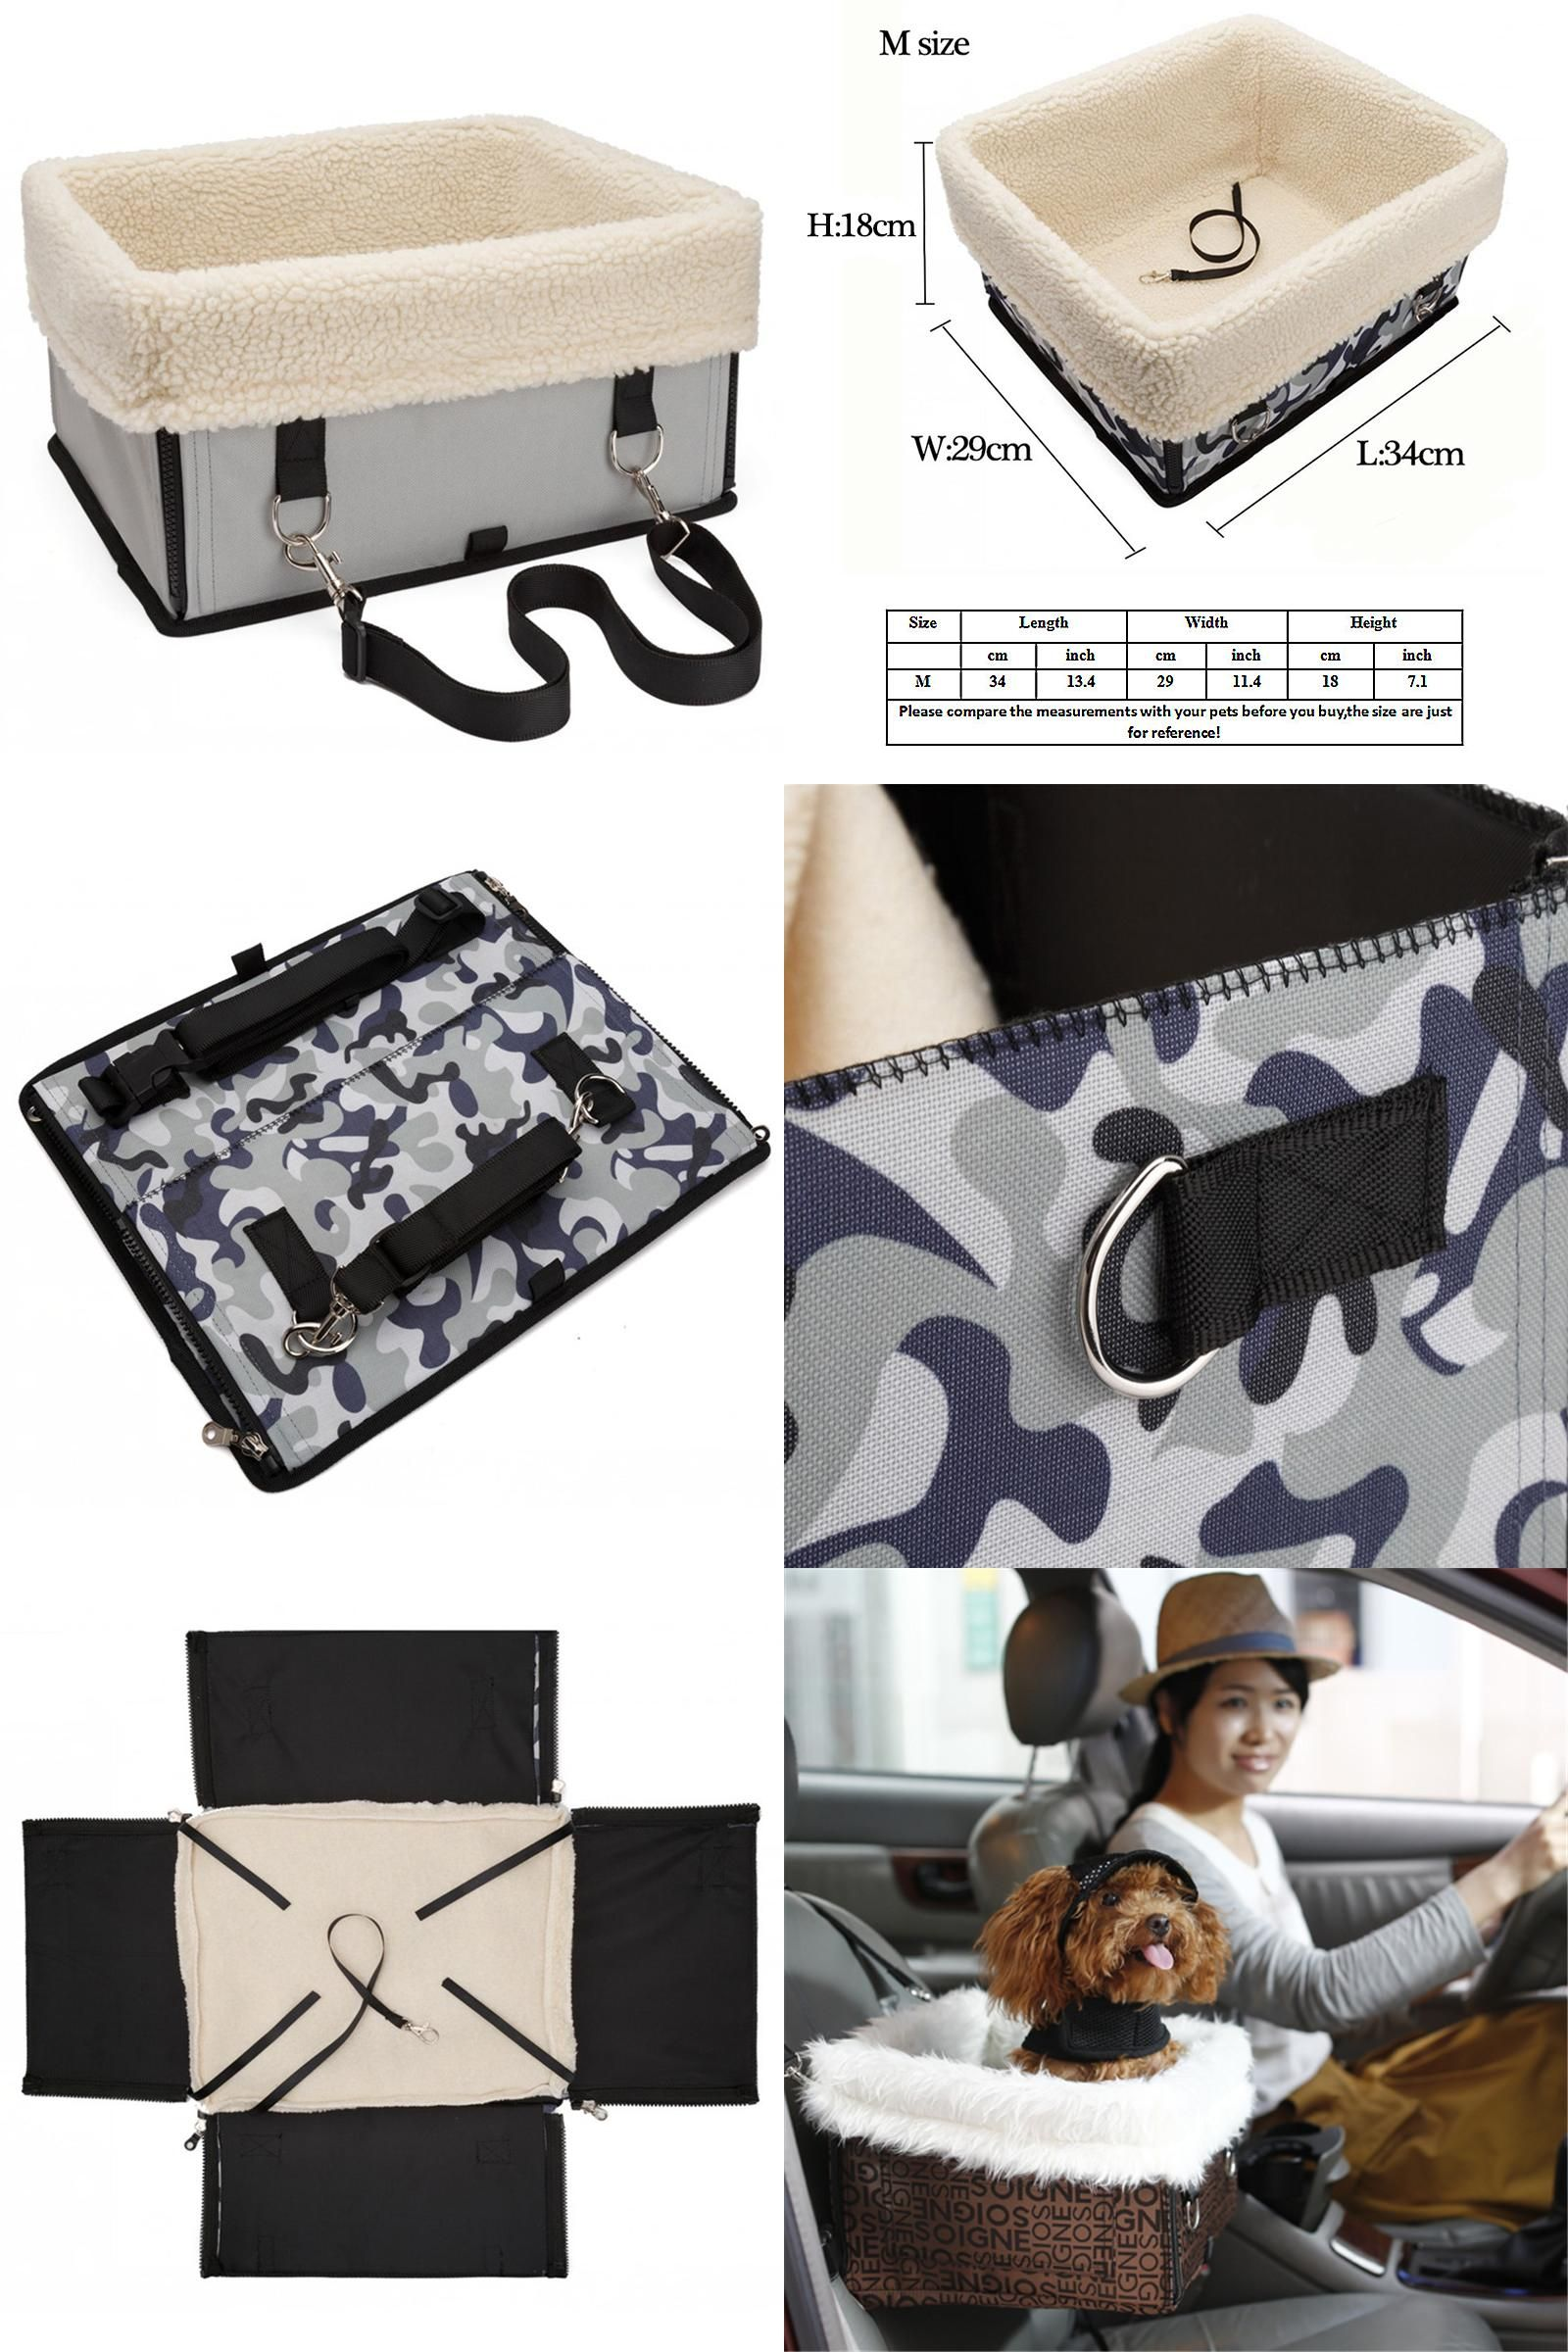 Visit to Buy] Hight Quality Solaid Pet Carrier Travel Carrying Bag